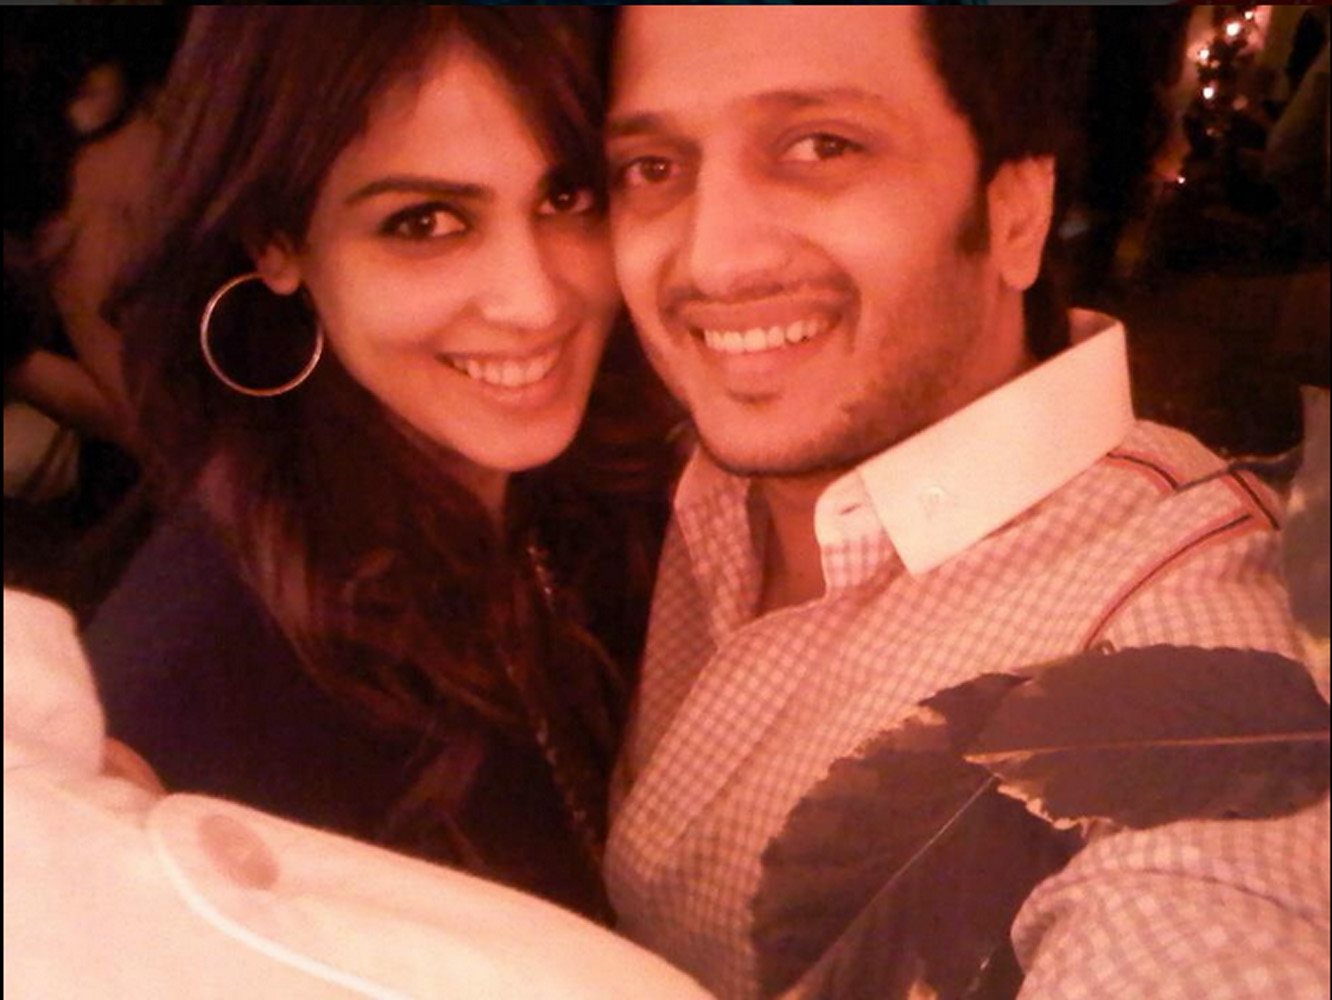 http://onlookersmedia.in/wp-content/uploads/2015/05/Riteish-Deshmukh-Genelia-Family-Stills-Images-Photos-Bollywood-Movie-Onlookers-Media-20.jpg